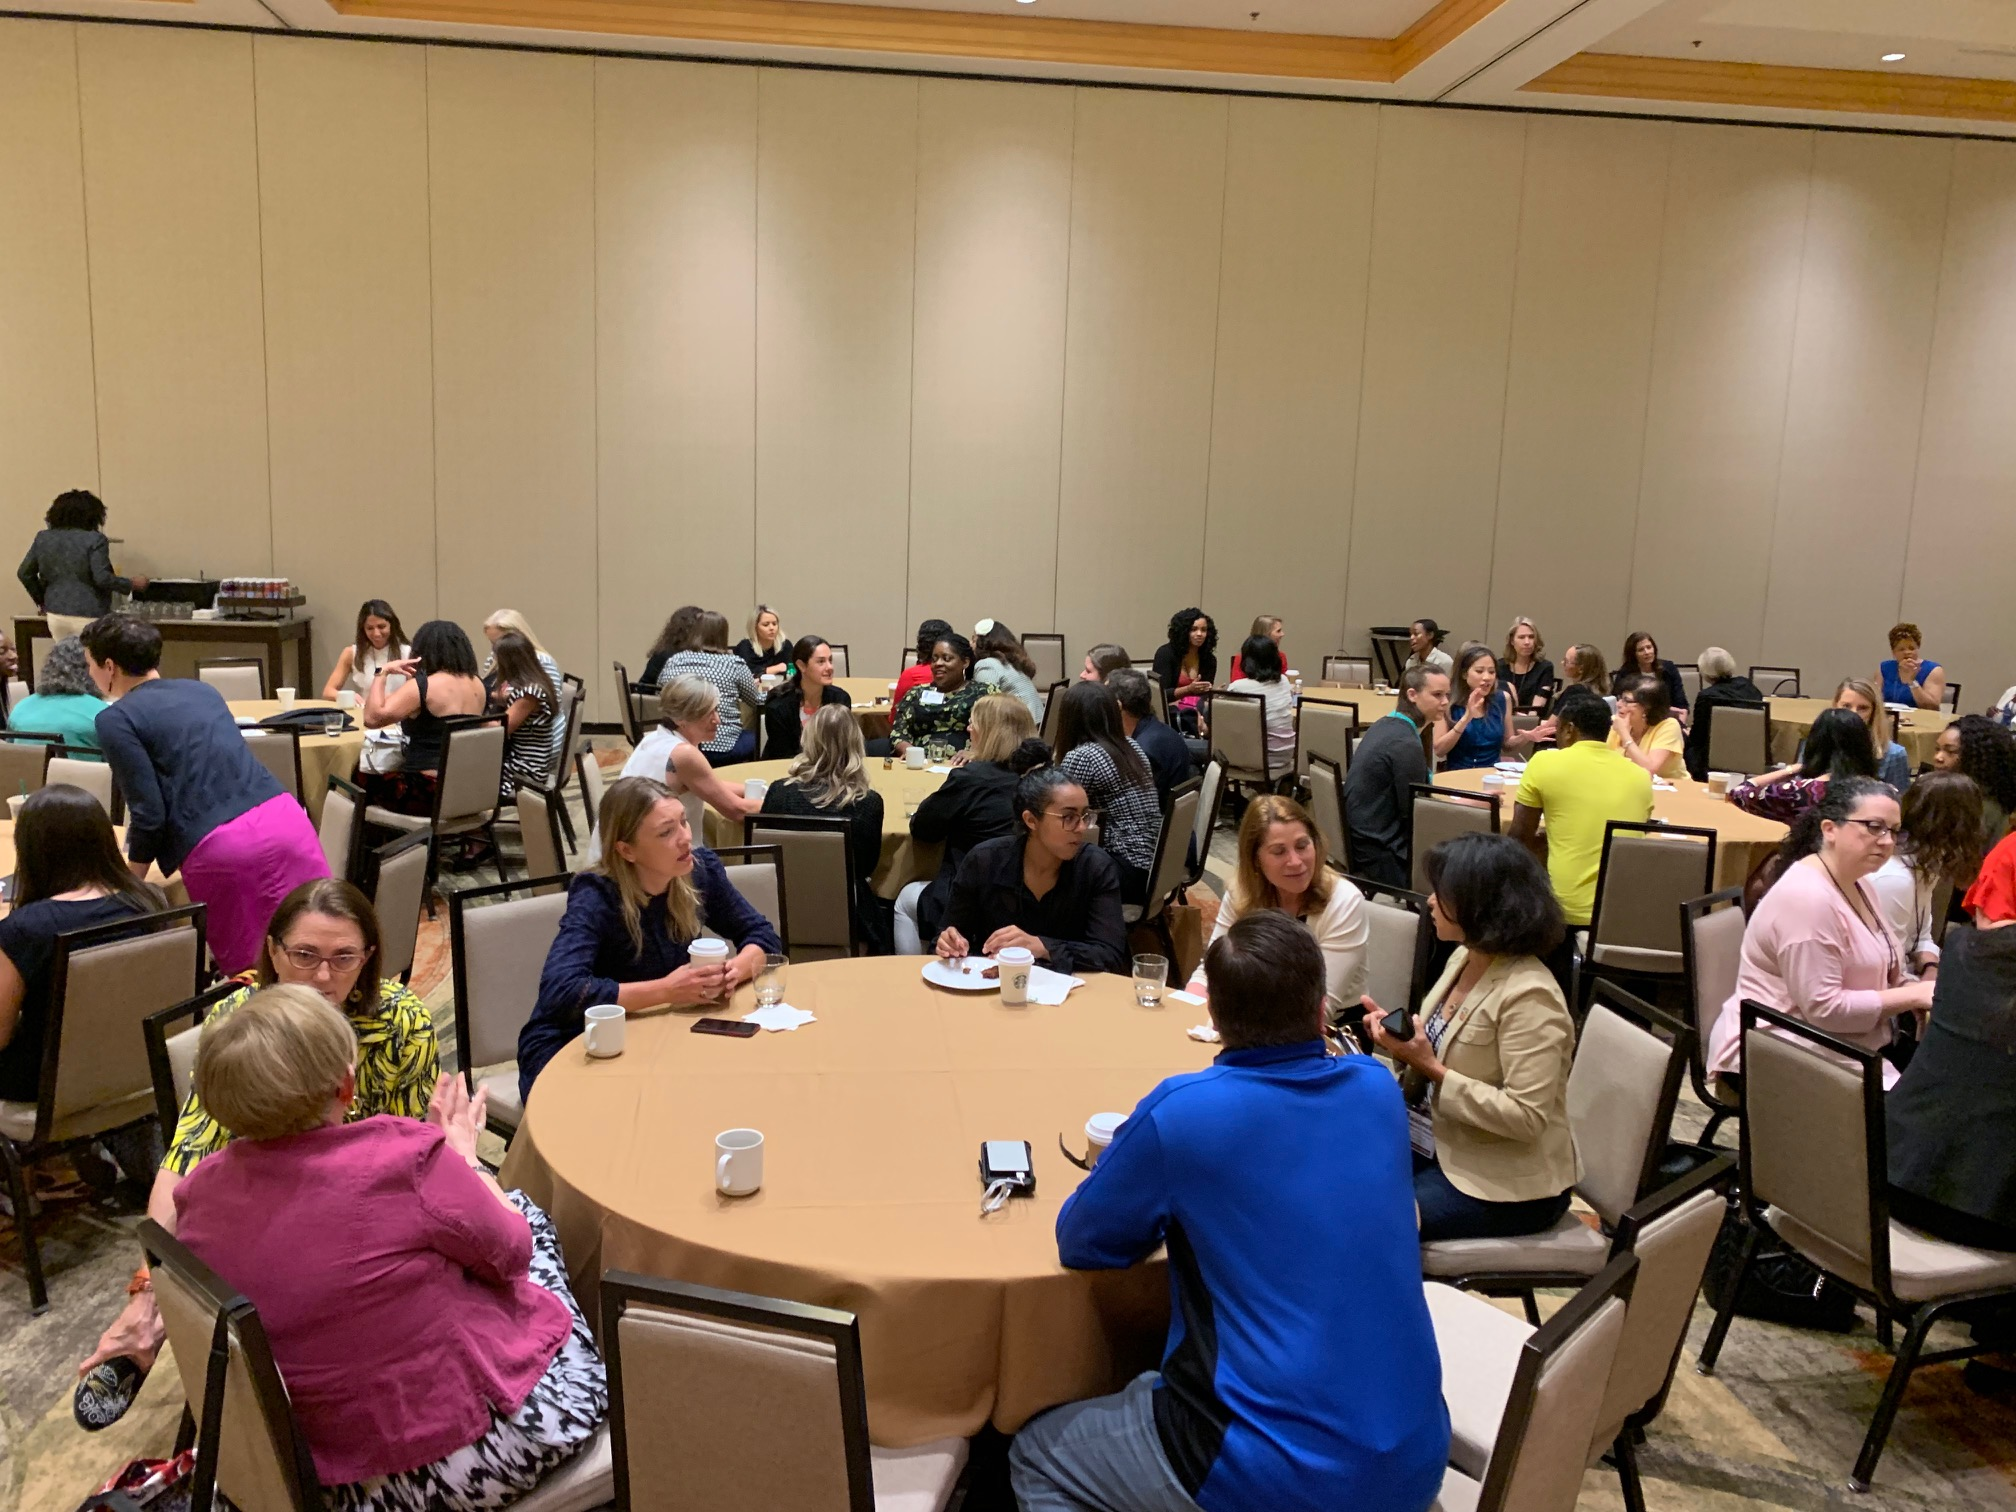 The Women in SLA breakfast brings together more than 100 women during the SLA Annual Conference